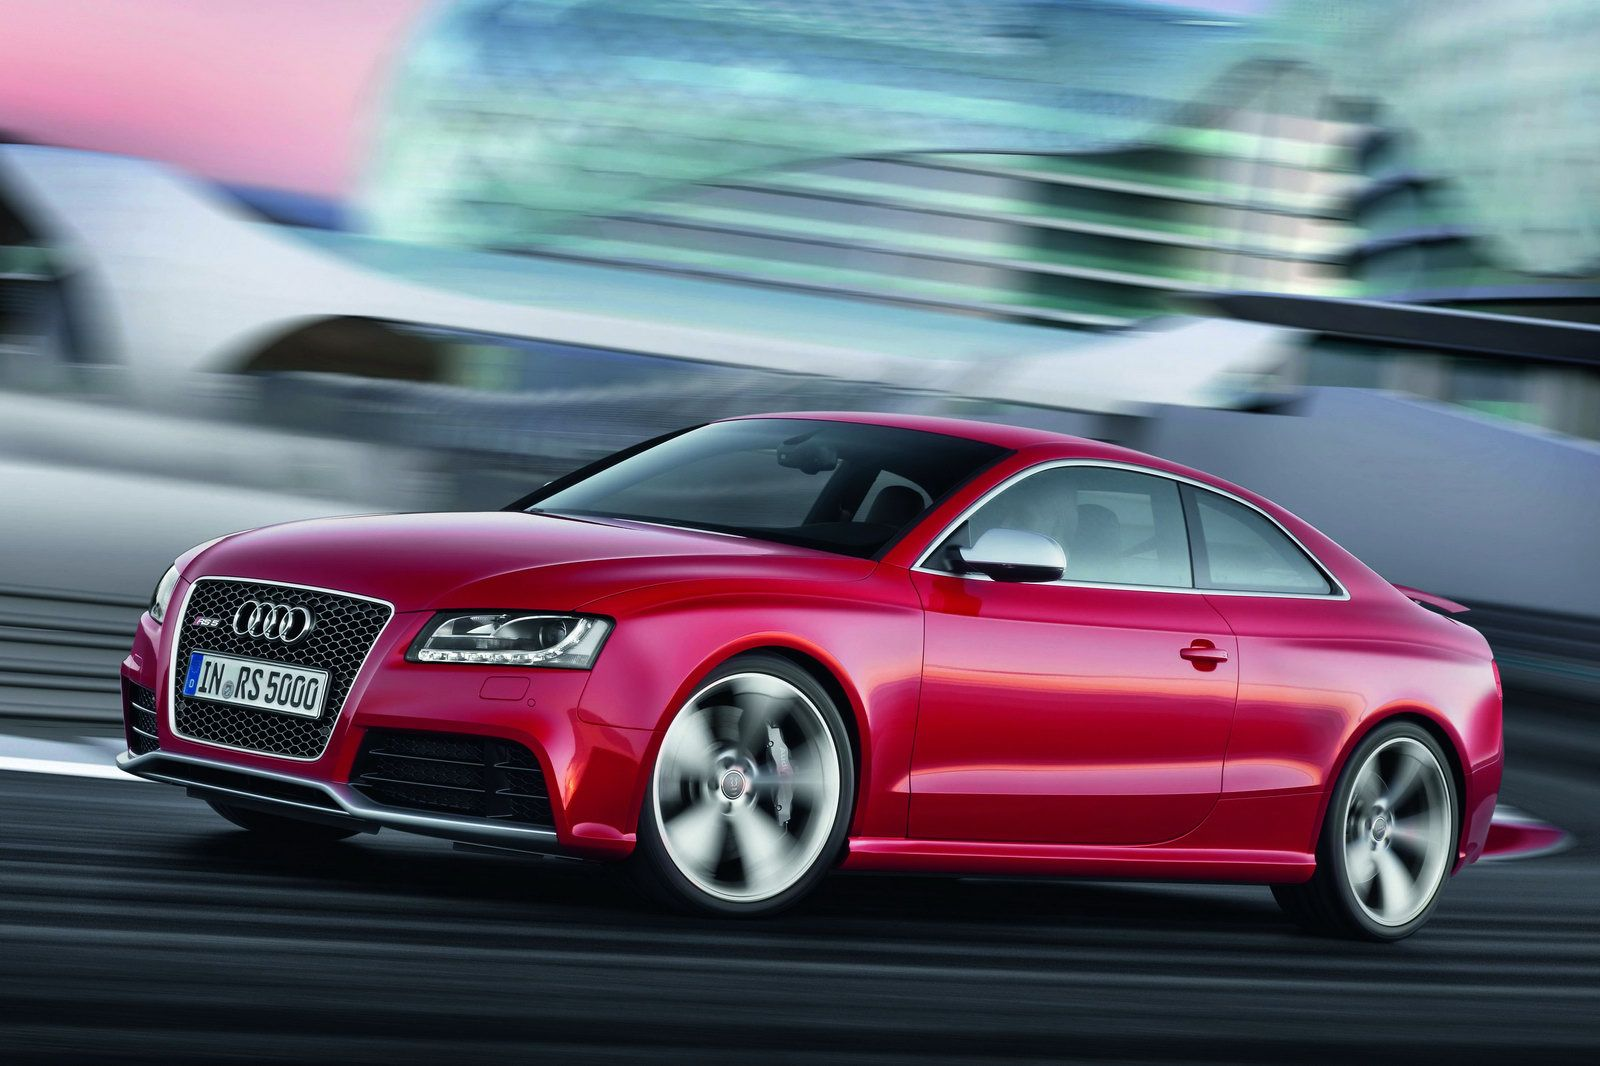 Amazoncom 2014 Audi RS5 Reviews Images and Specs Vehicles